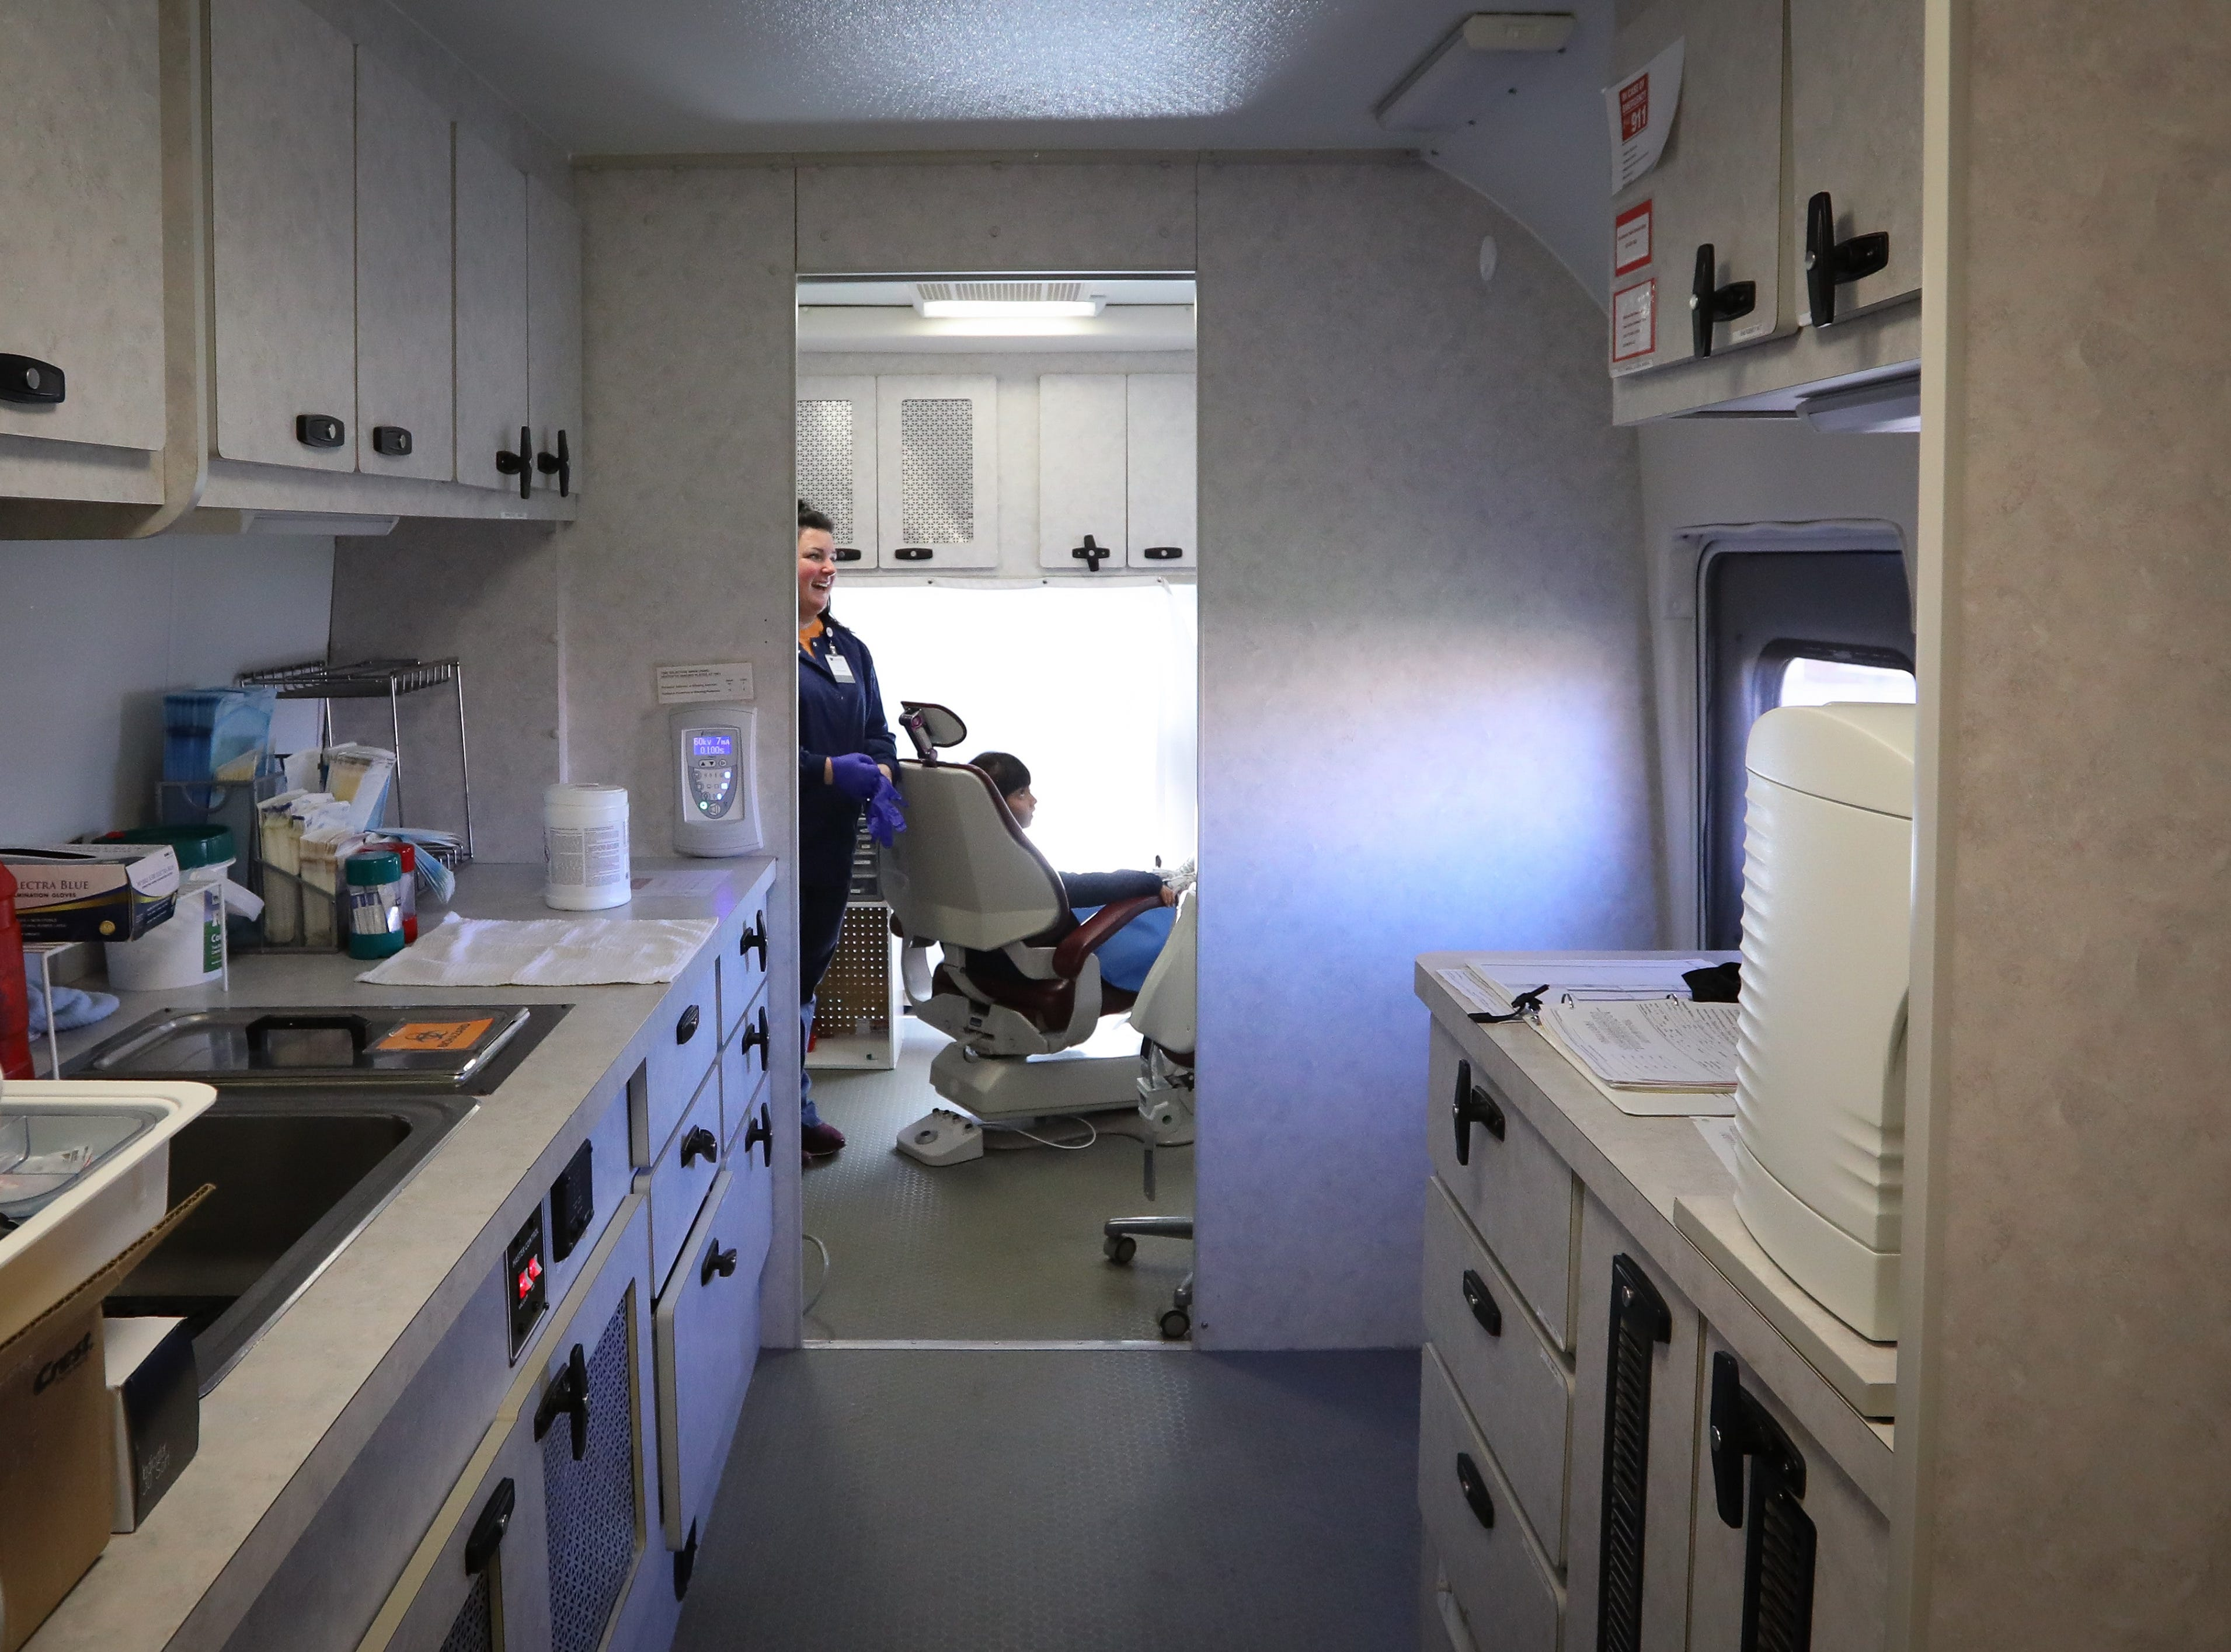 A general view of the interior of the Dental Connections mobile unit at Karen Acres Elementary School on Nov. 15, 2018 in Urbandale, Iowa. Dental Connections is a mobile unit that provides basic dental check-ups for students. Jenny Villegas, the school's nurse, spearheaded the program for students to receive dental services who may not otherwise receive them.